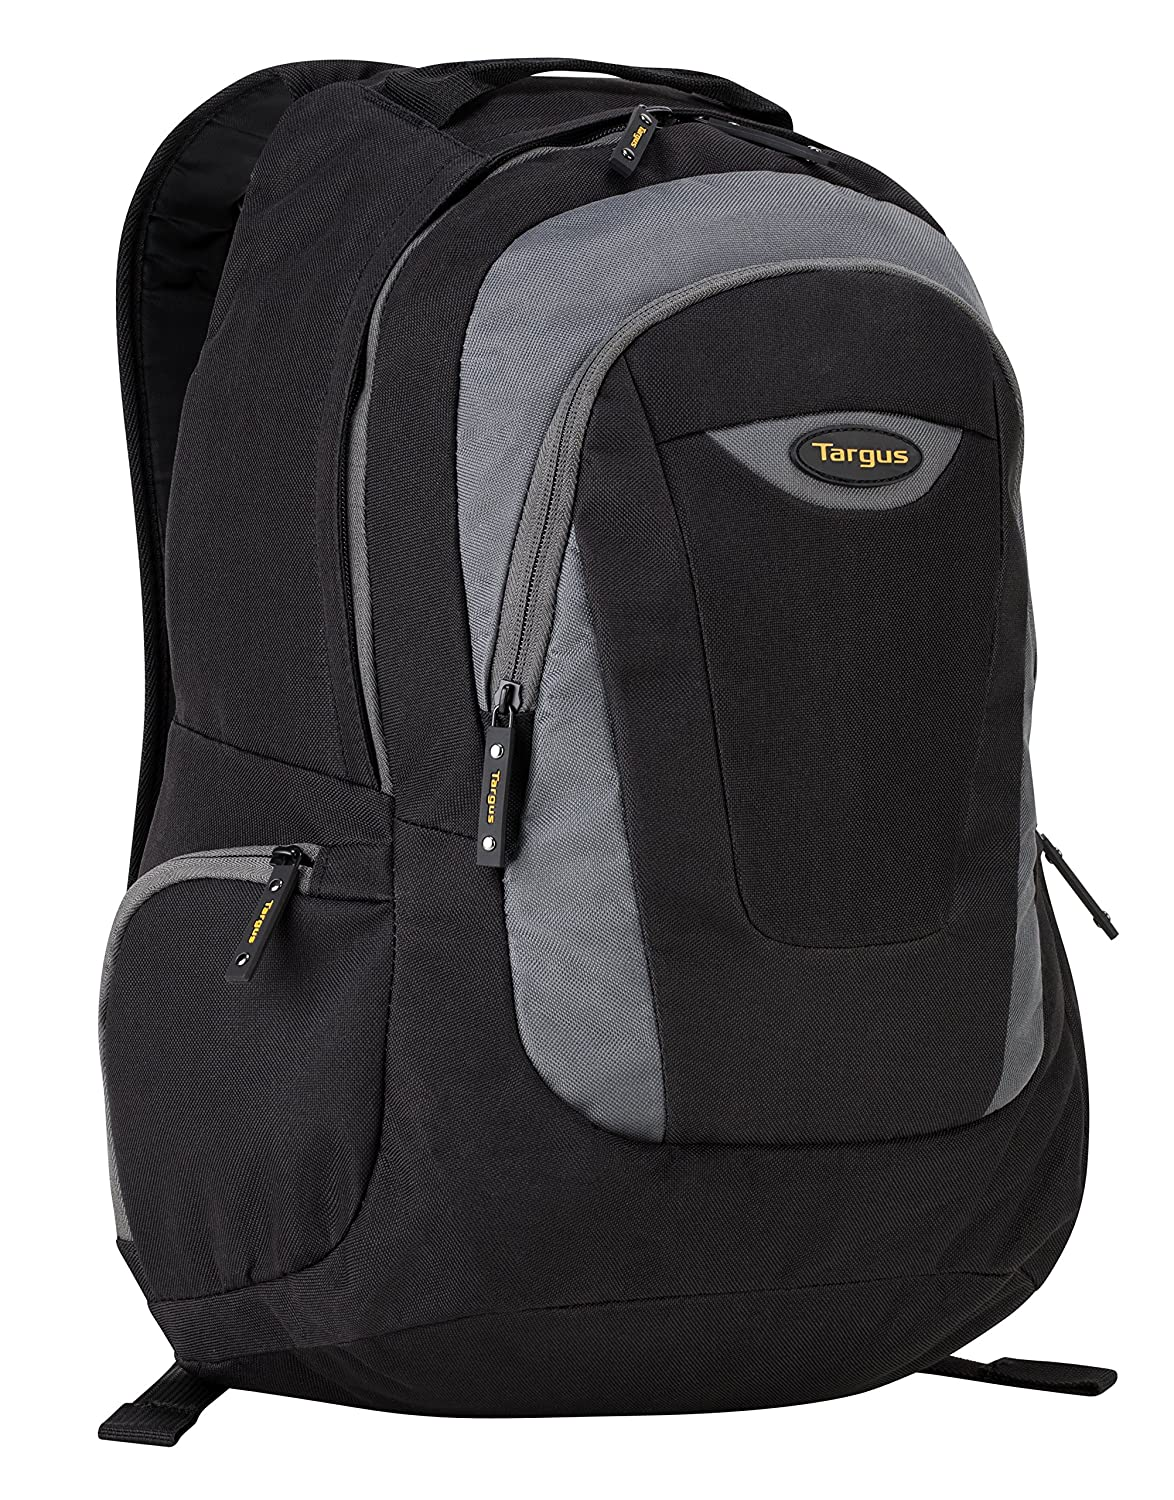 Save on a Backpack from Targus